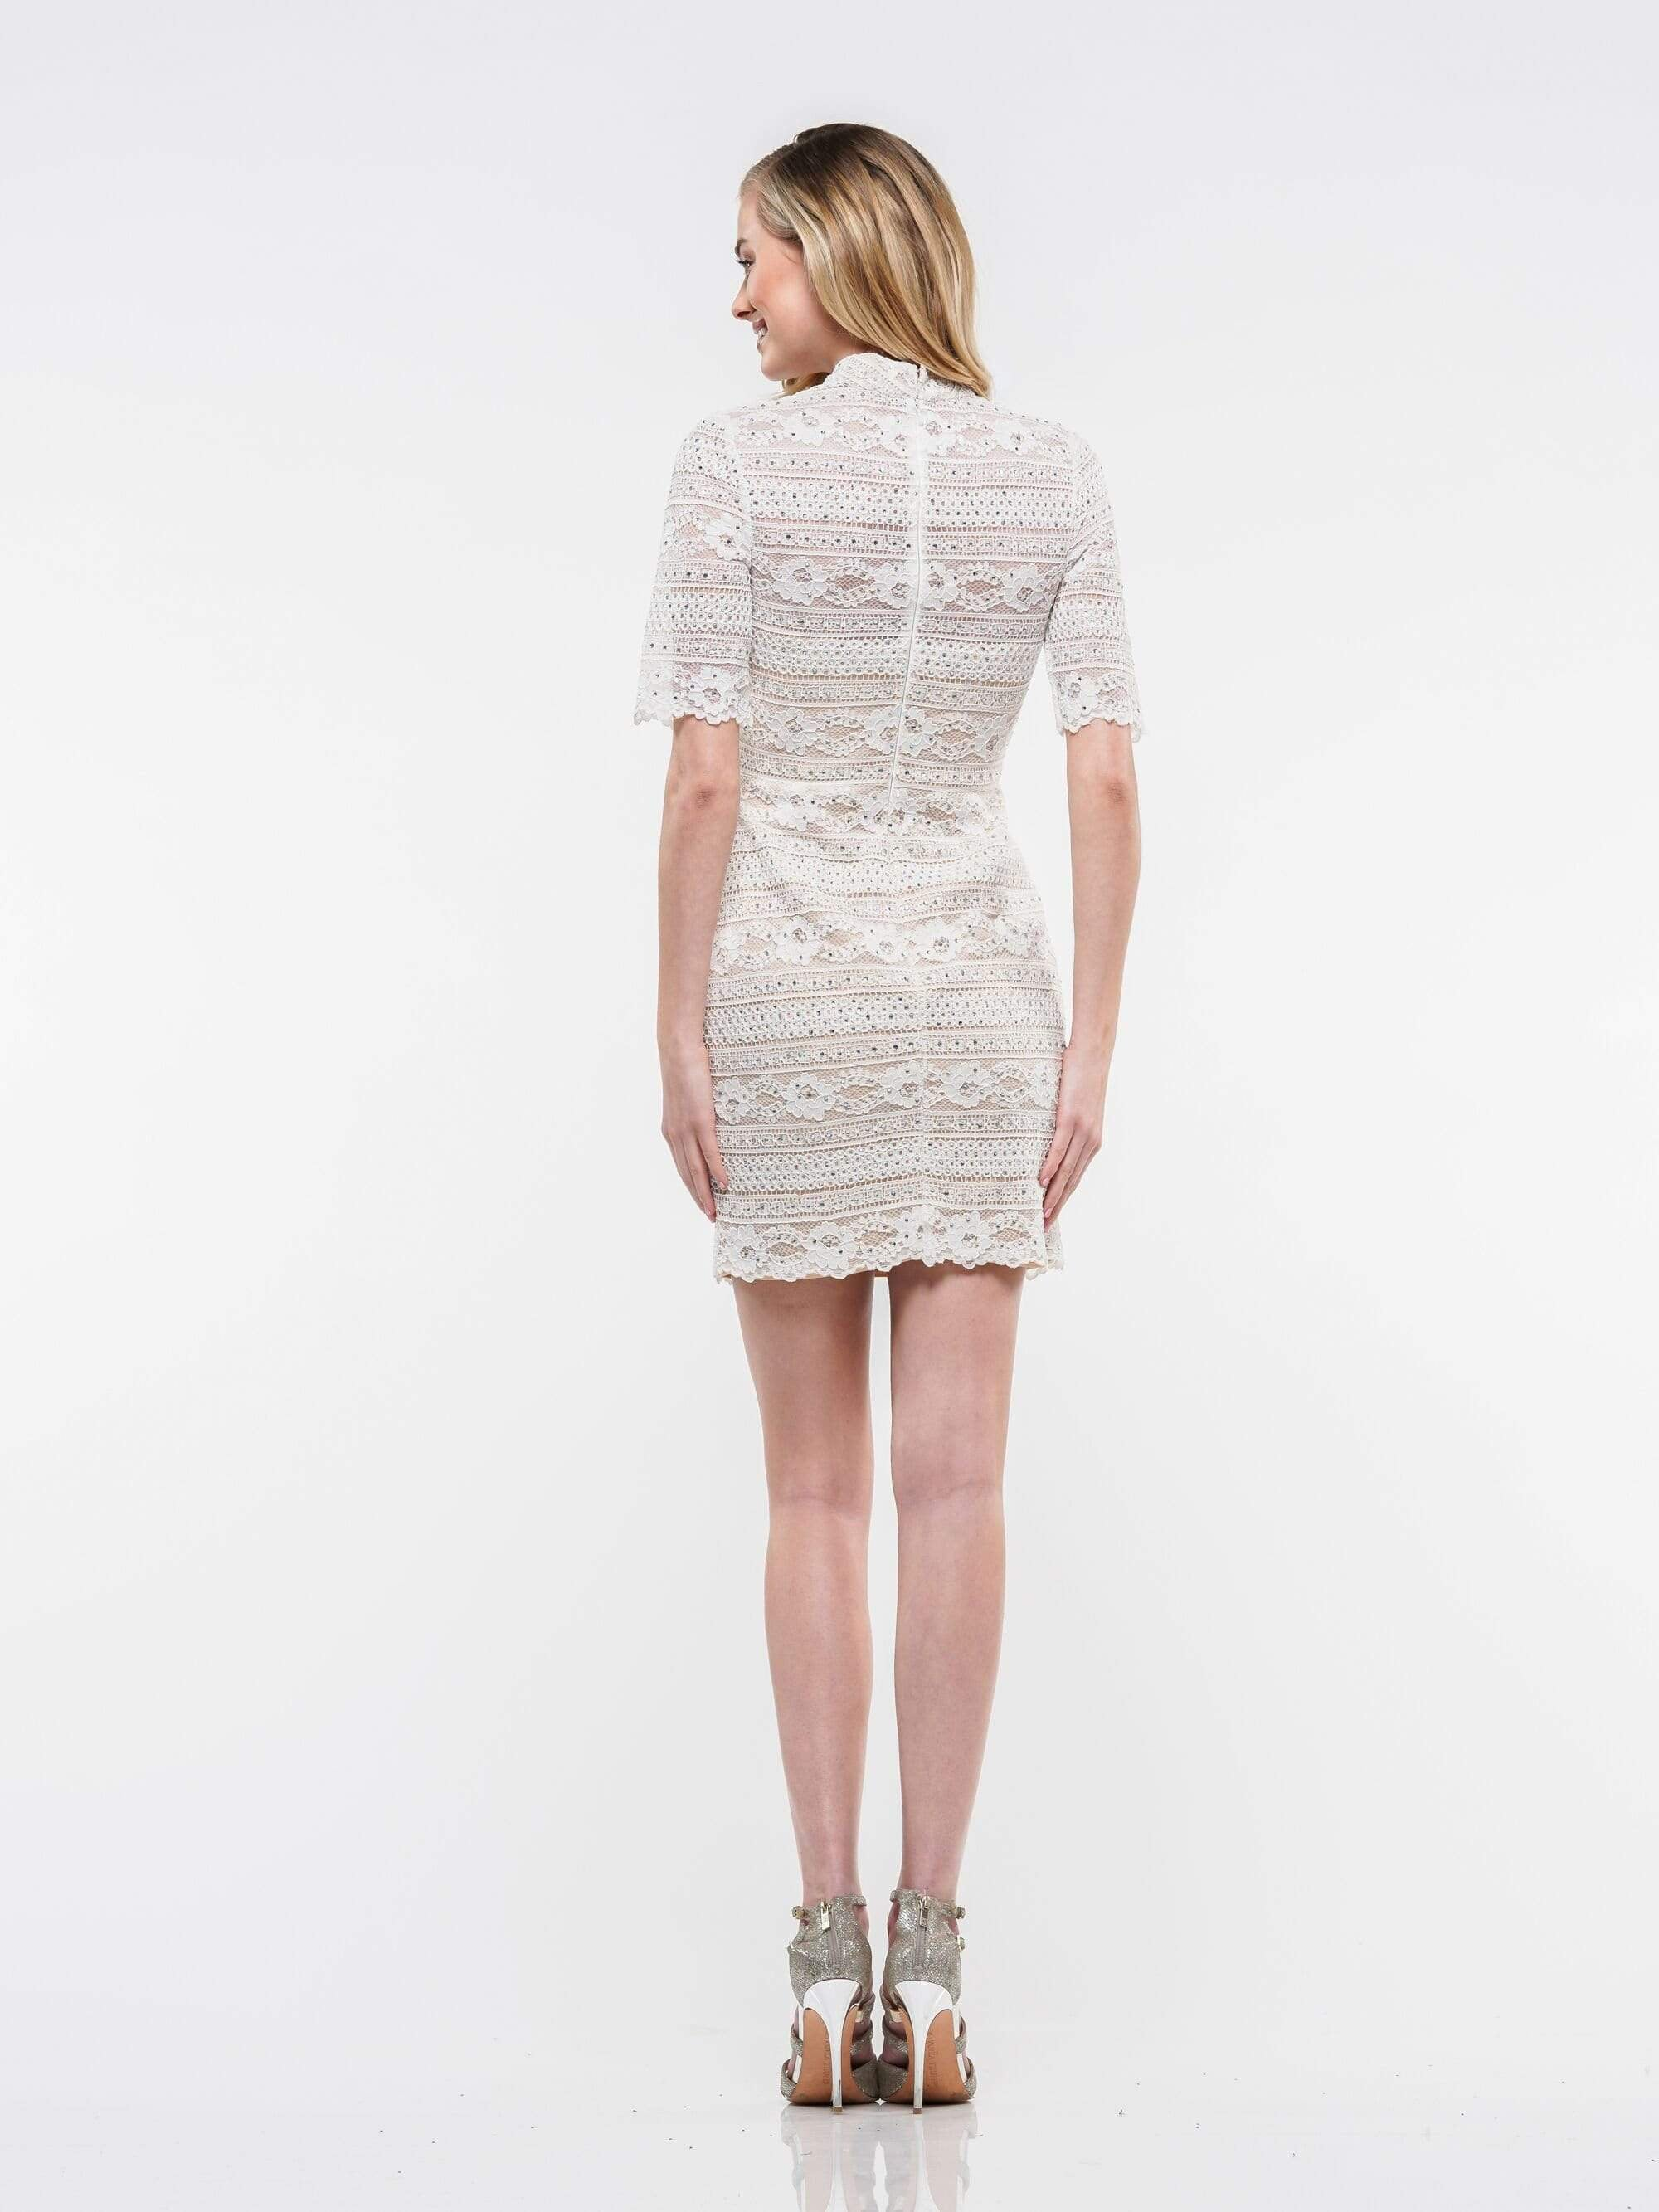 Colors Dress - 2162 Lace High Neck Sheath Dress in White